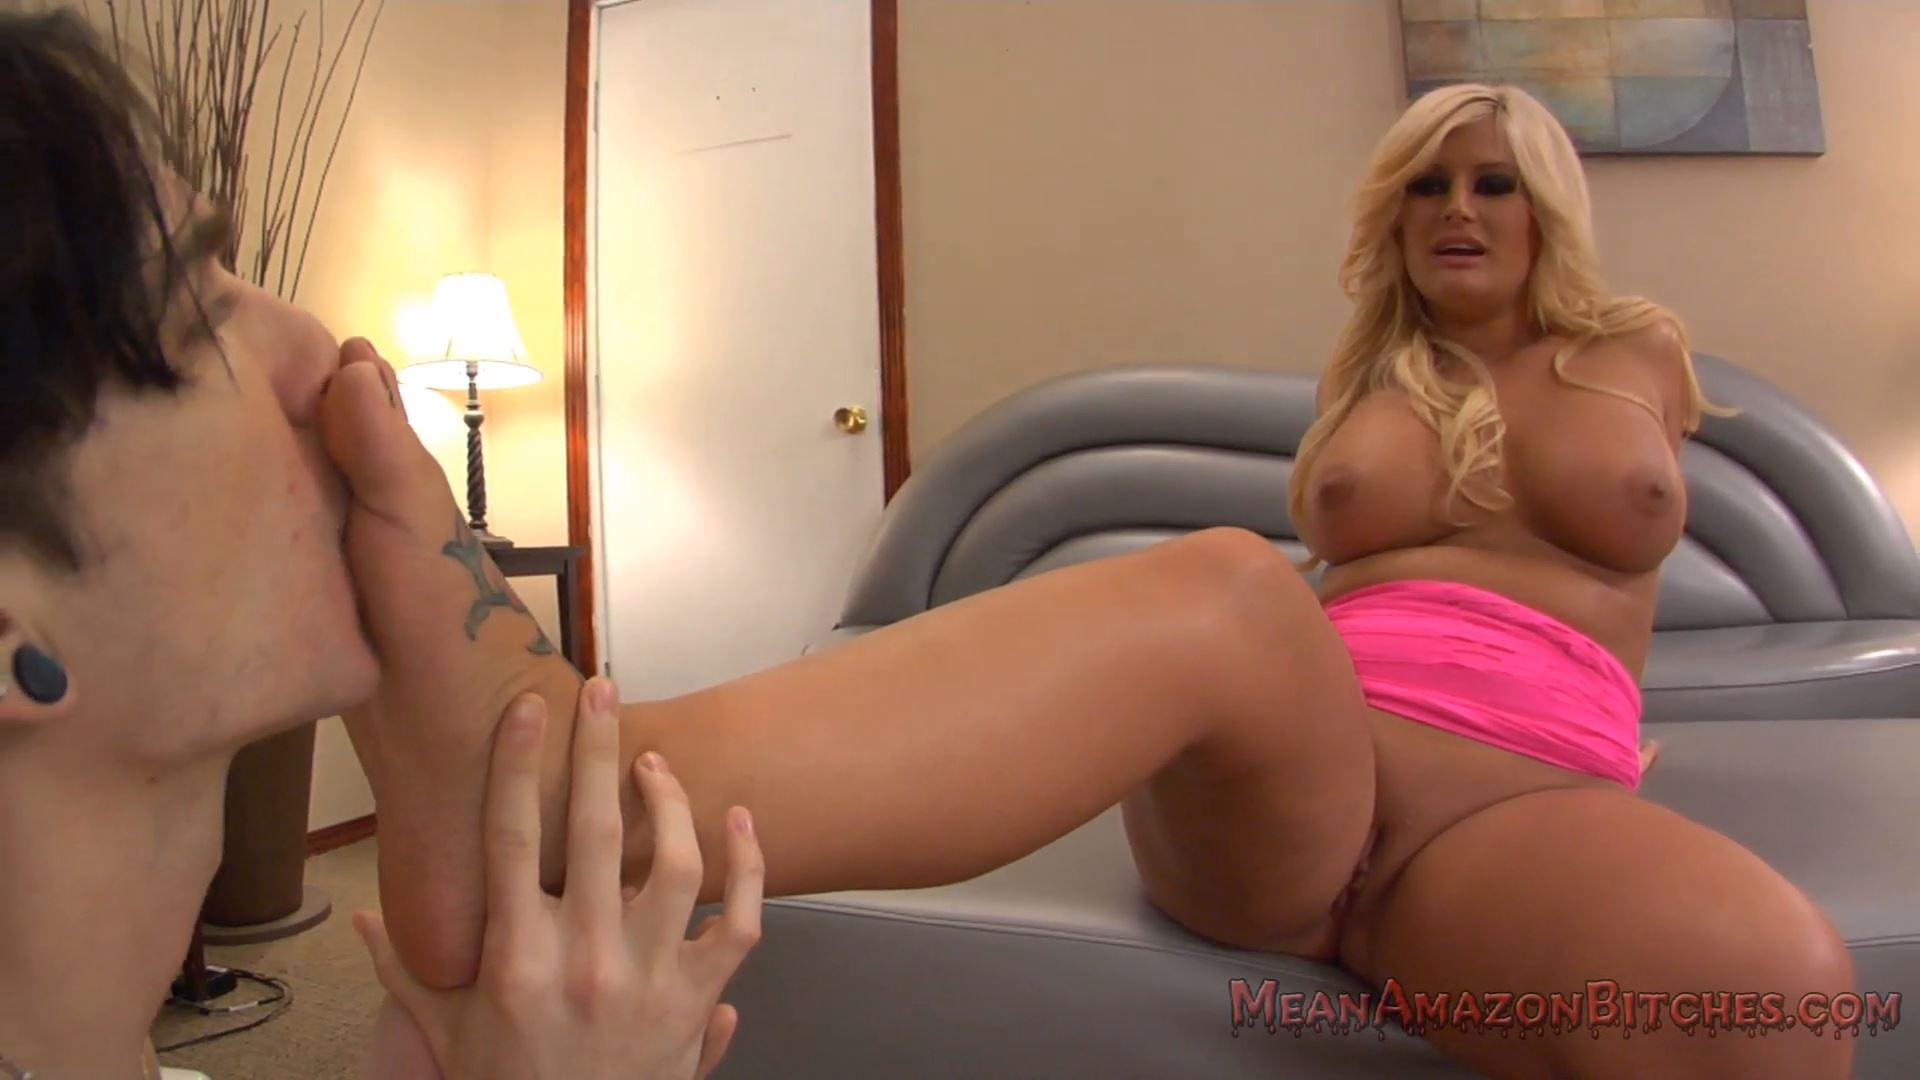 Julie Cash In Scene: MEANAMAZONBITCHES - Julie Cash - MEANWORLD - FULL HD/1080p/MP4